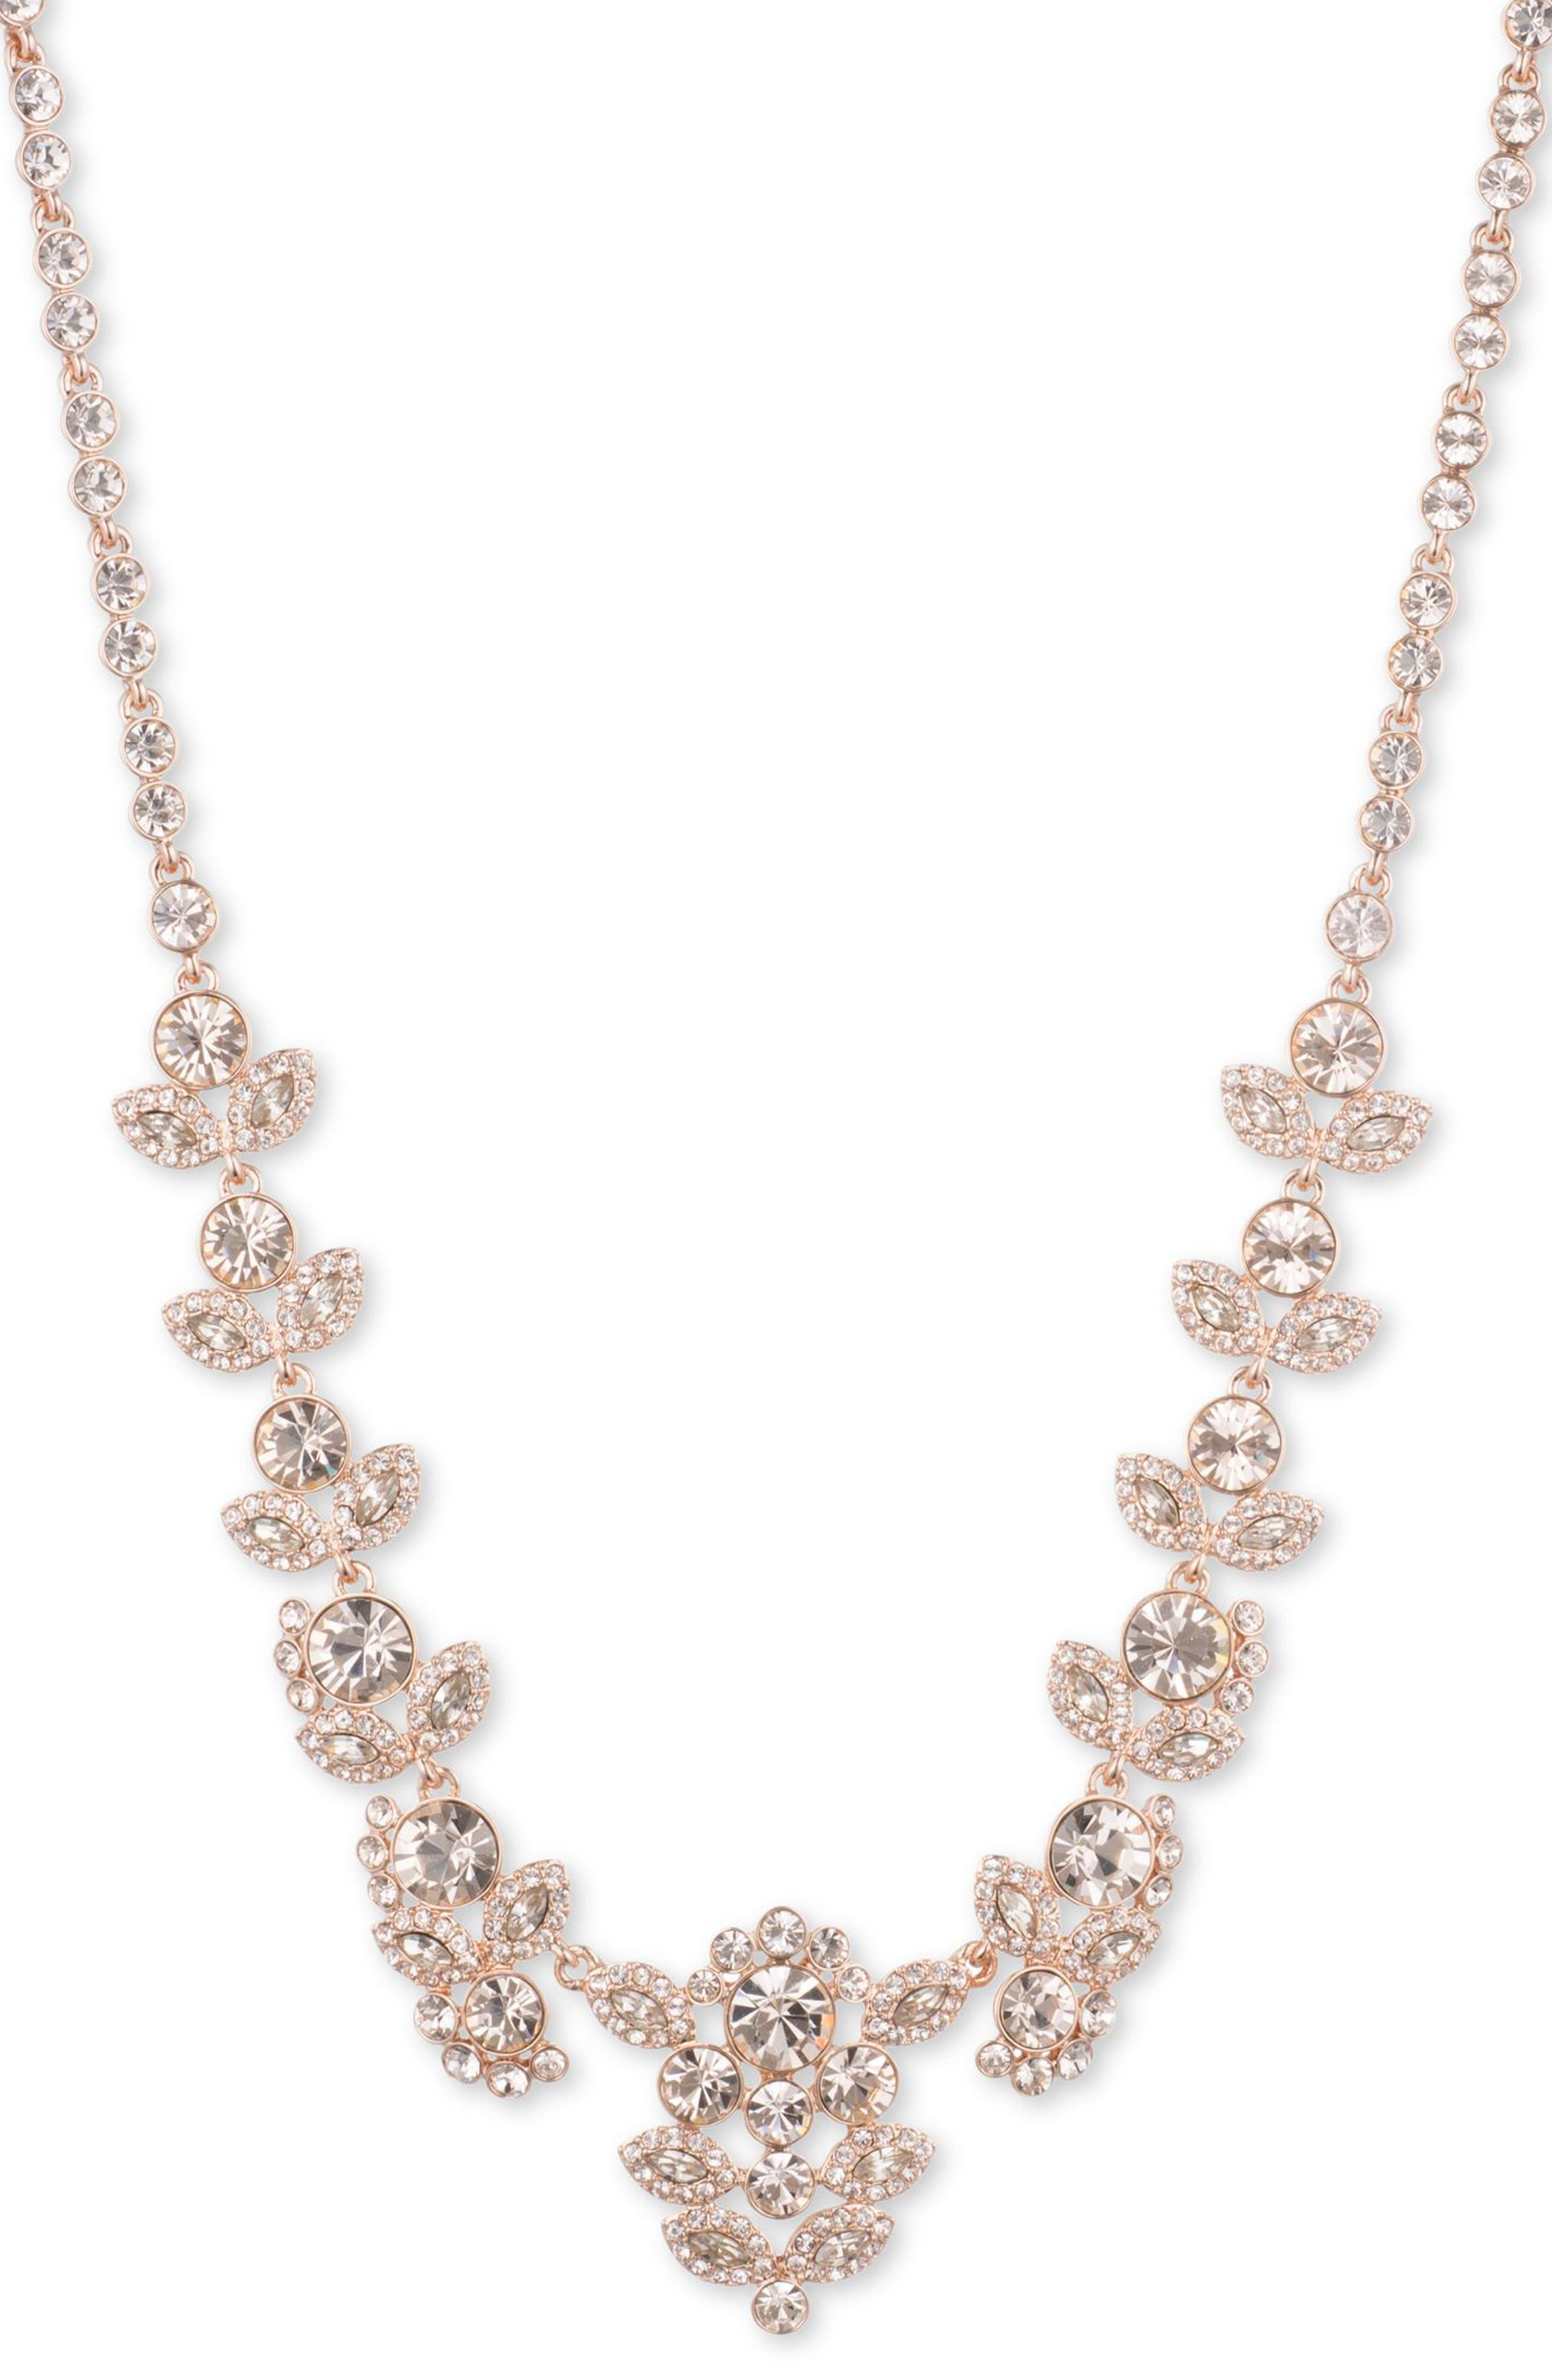 Crystal Collar Necklace,                         Main,                         color, Rose Gold / Silk